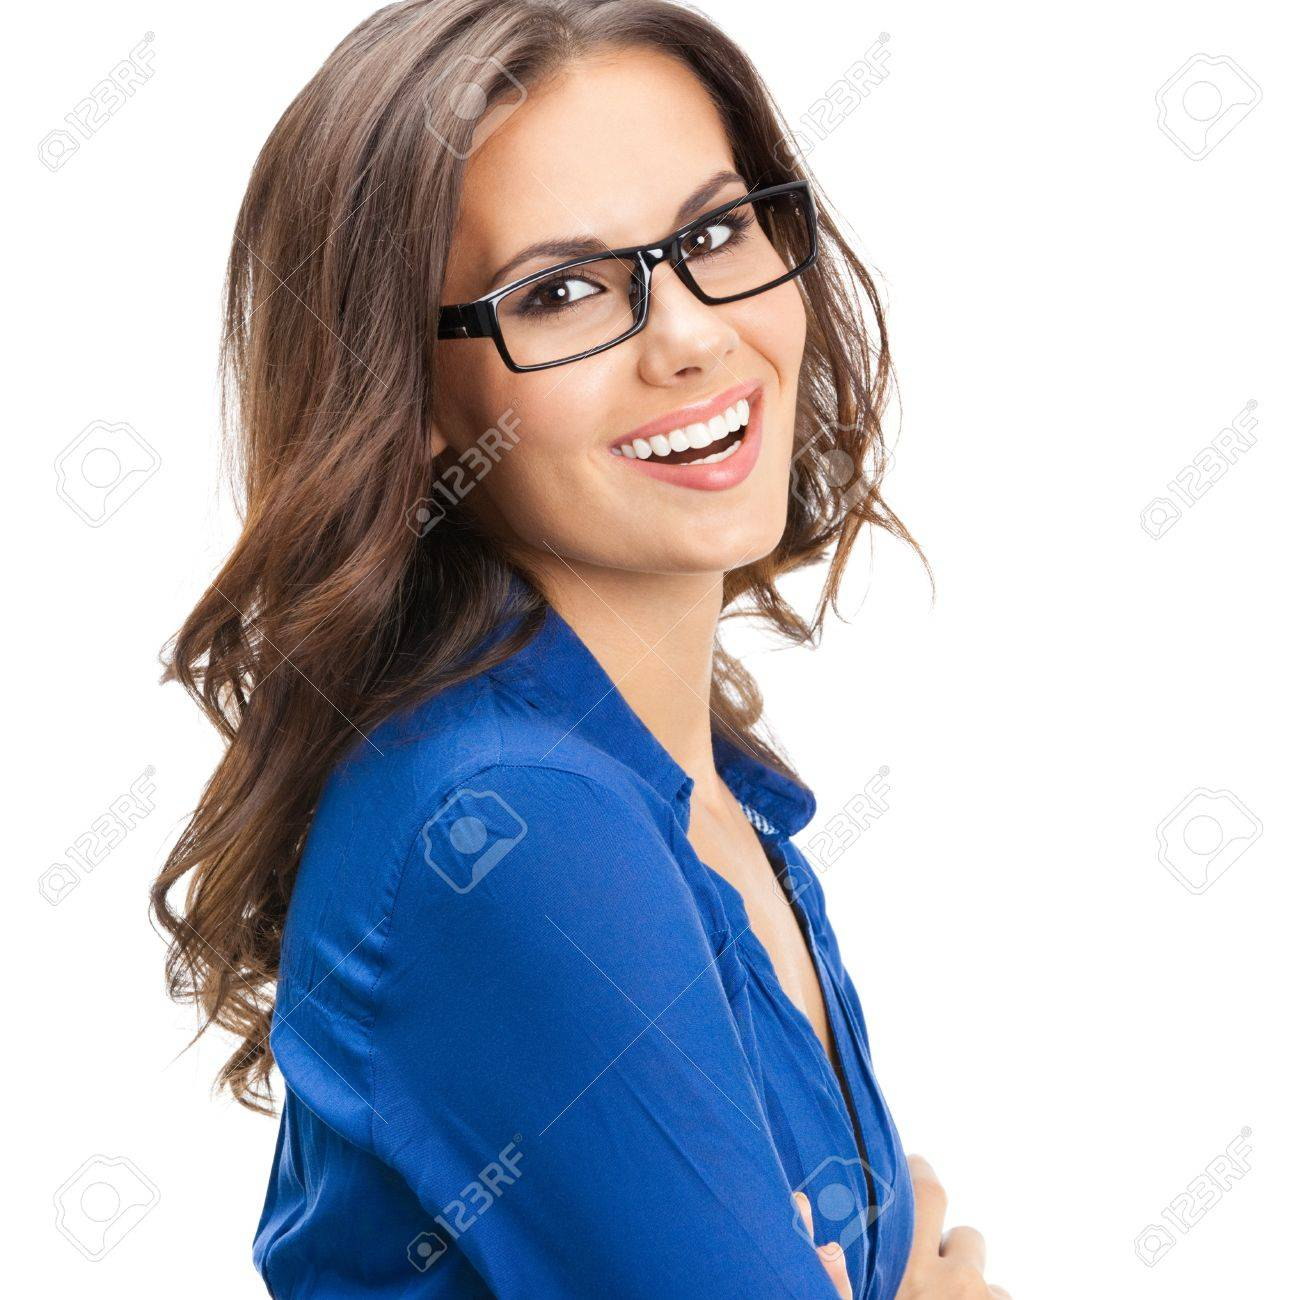 Portrait of happy smiling young business woman in glasses, isolated over white background Stock Photo - 18196030